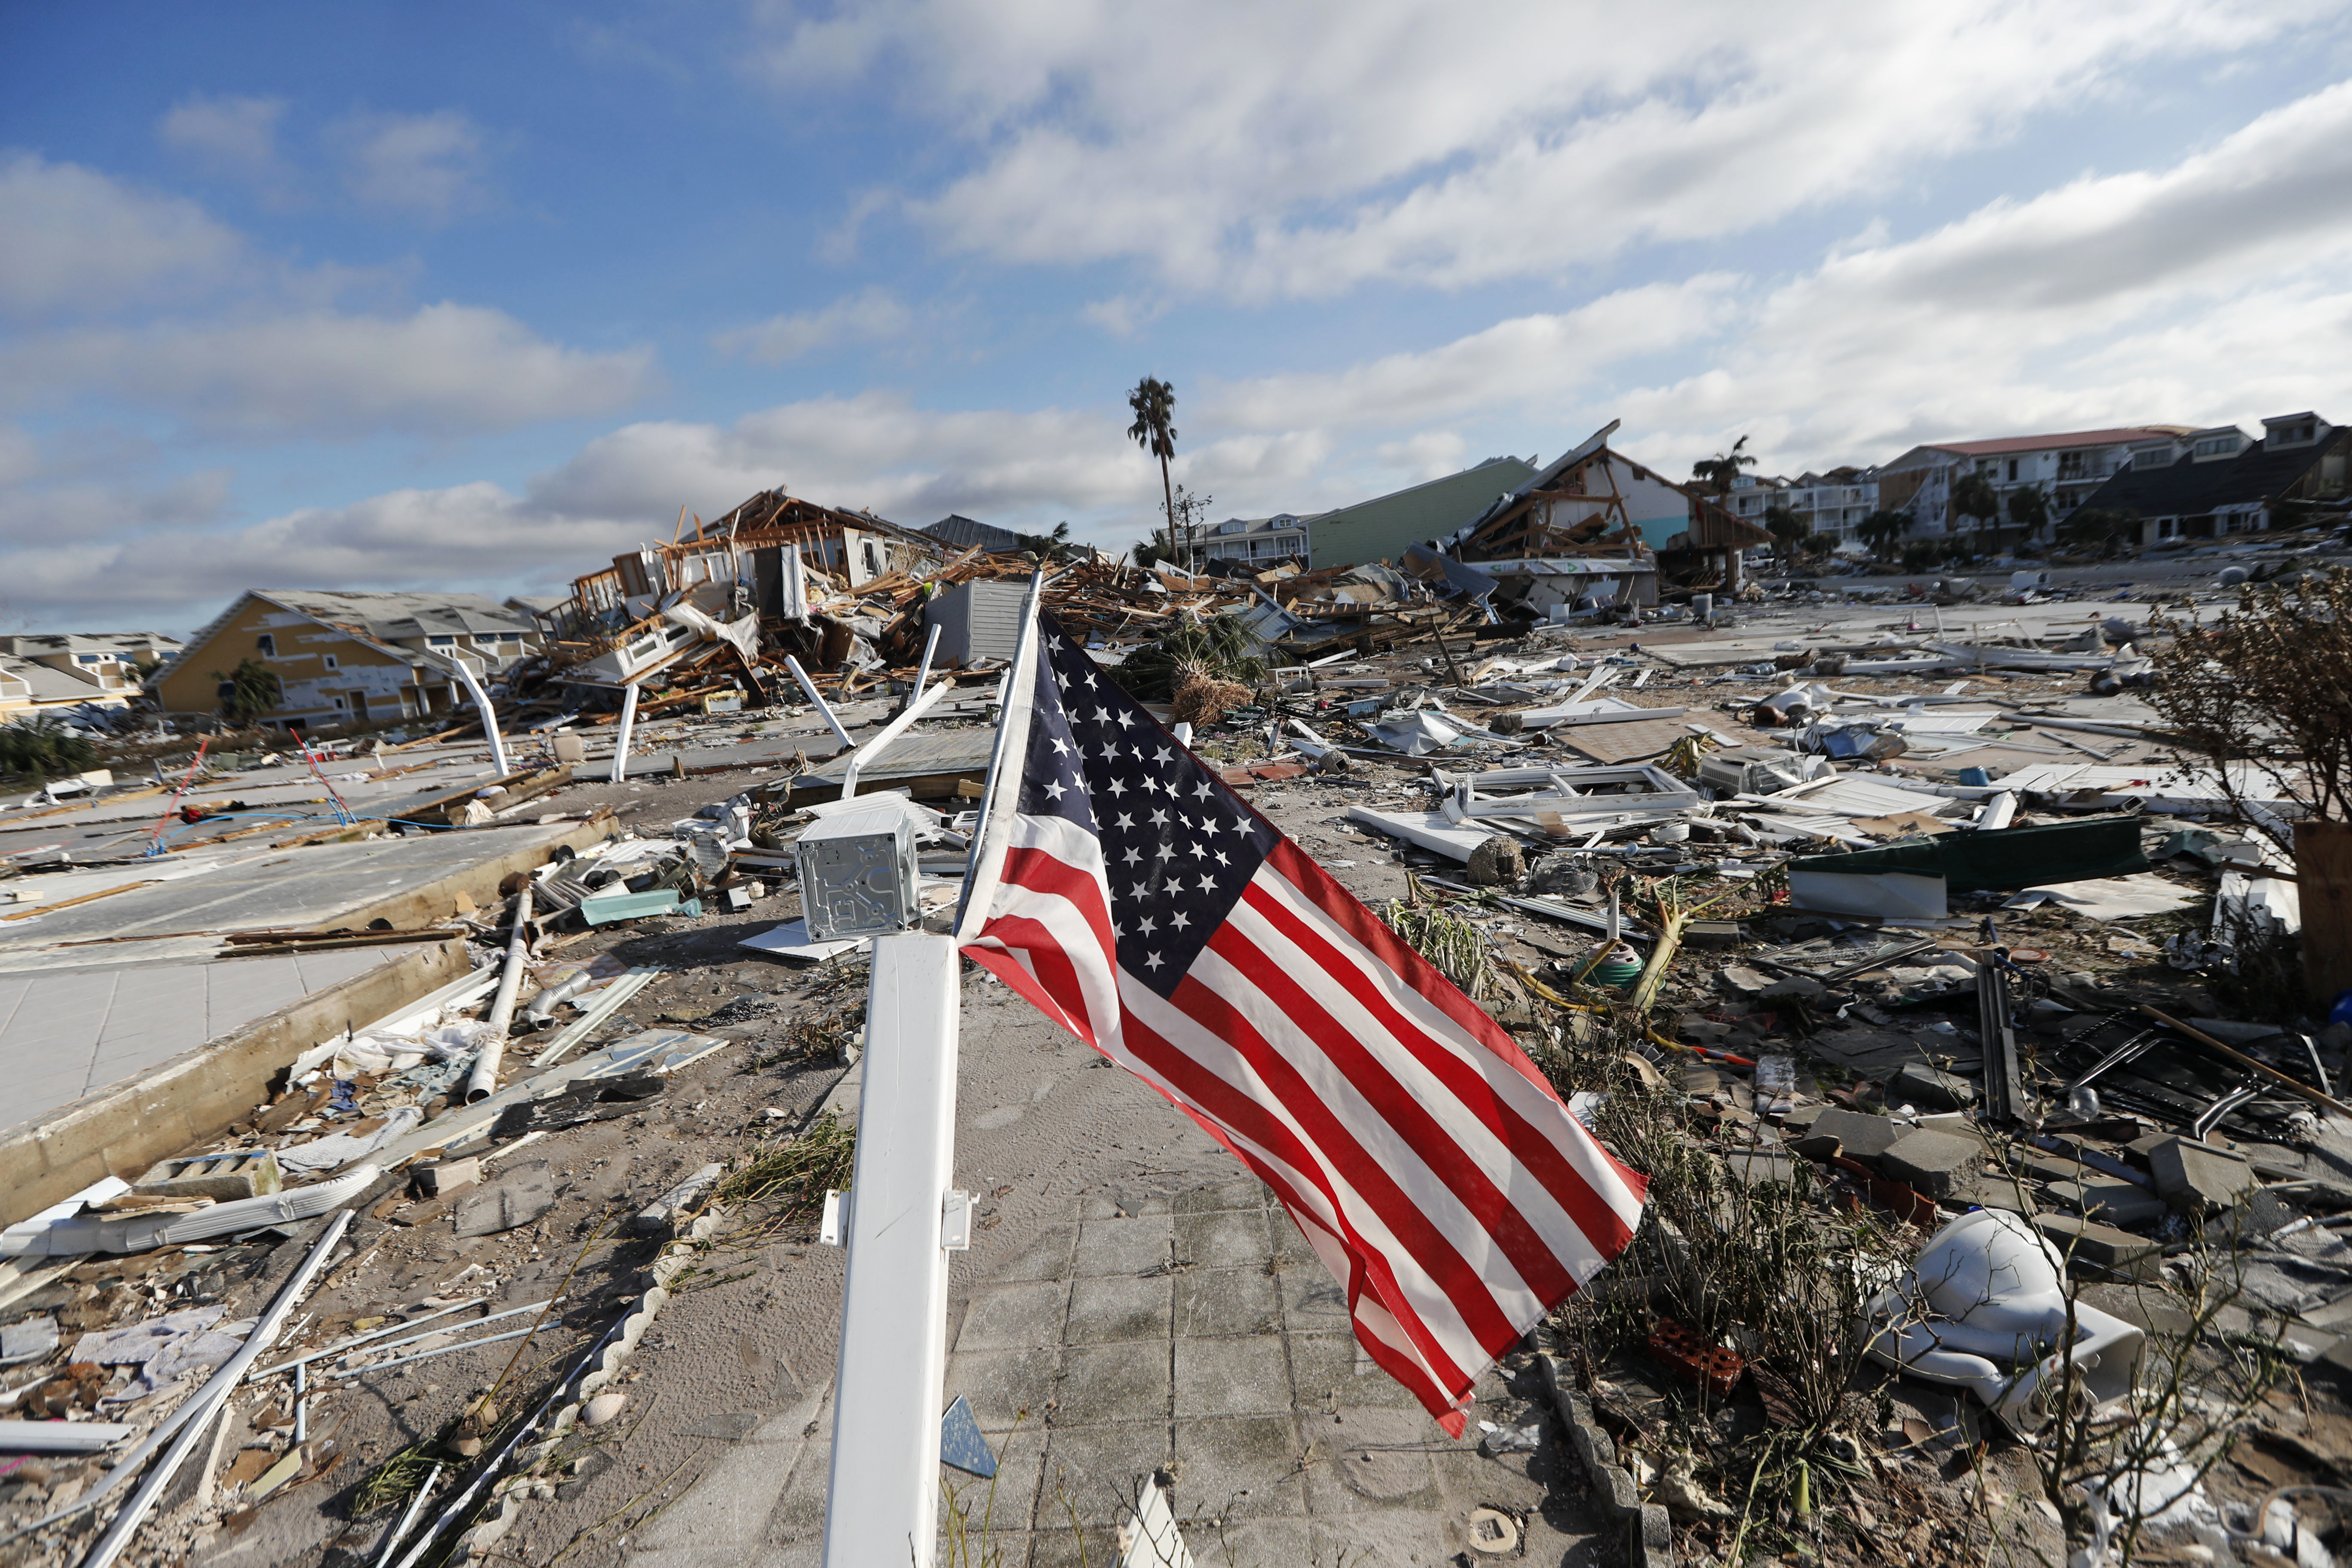 An American flag flies amidst destruction in the aftermath of Hurricane Michael in Mexico Beach, Fla., Thursday, Oct. 11, 2018.